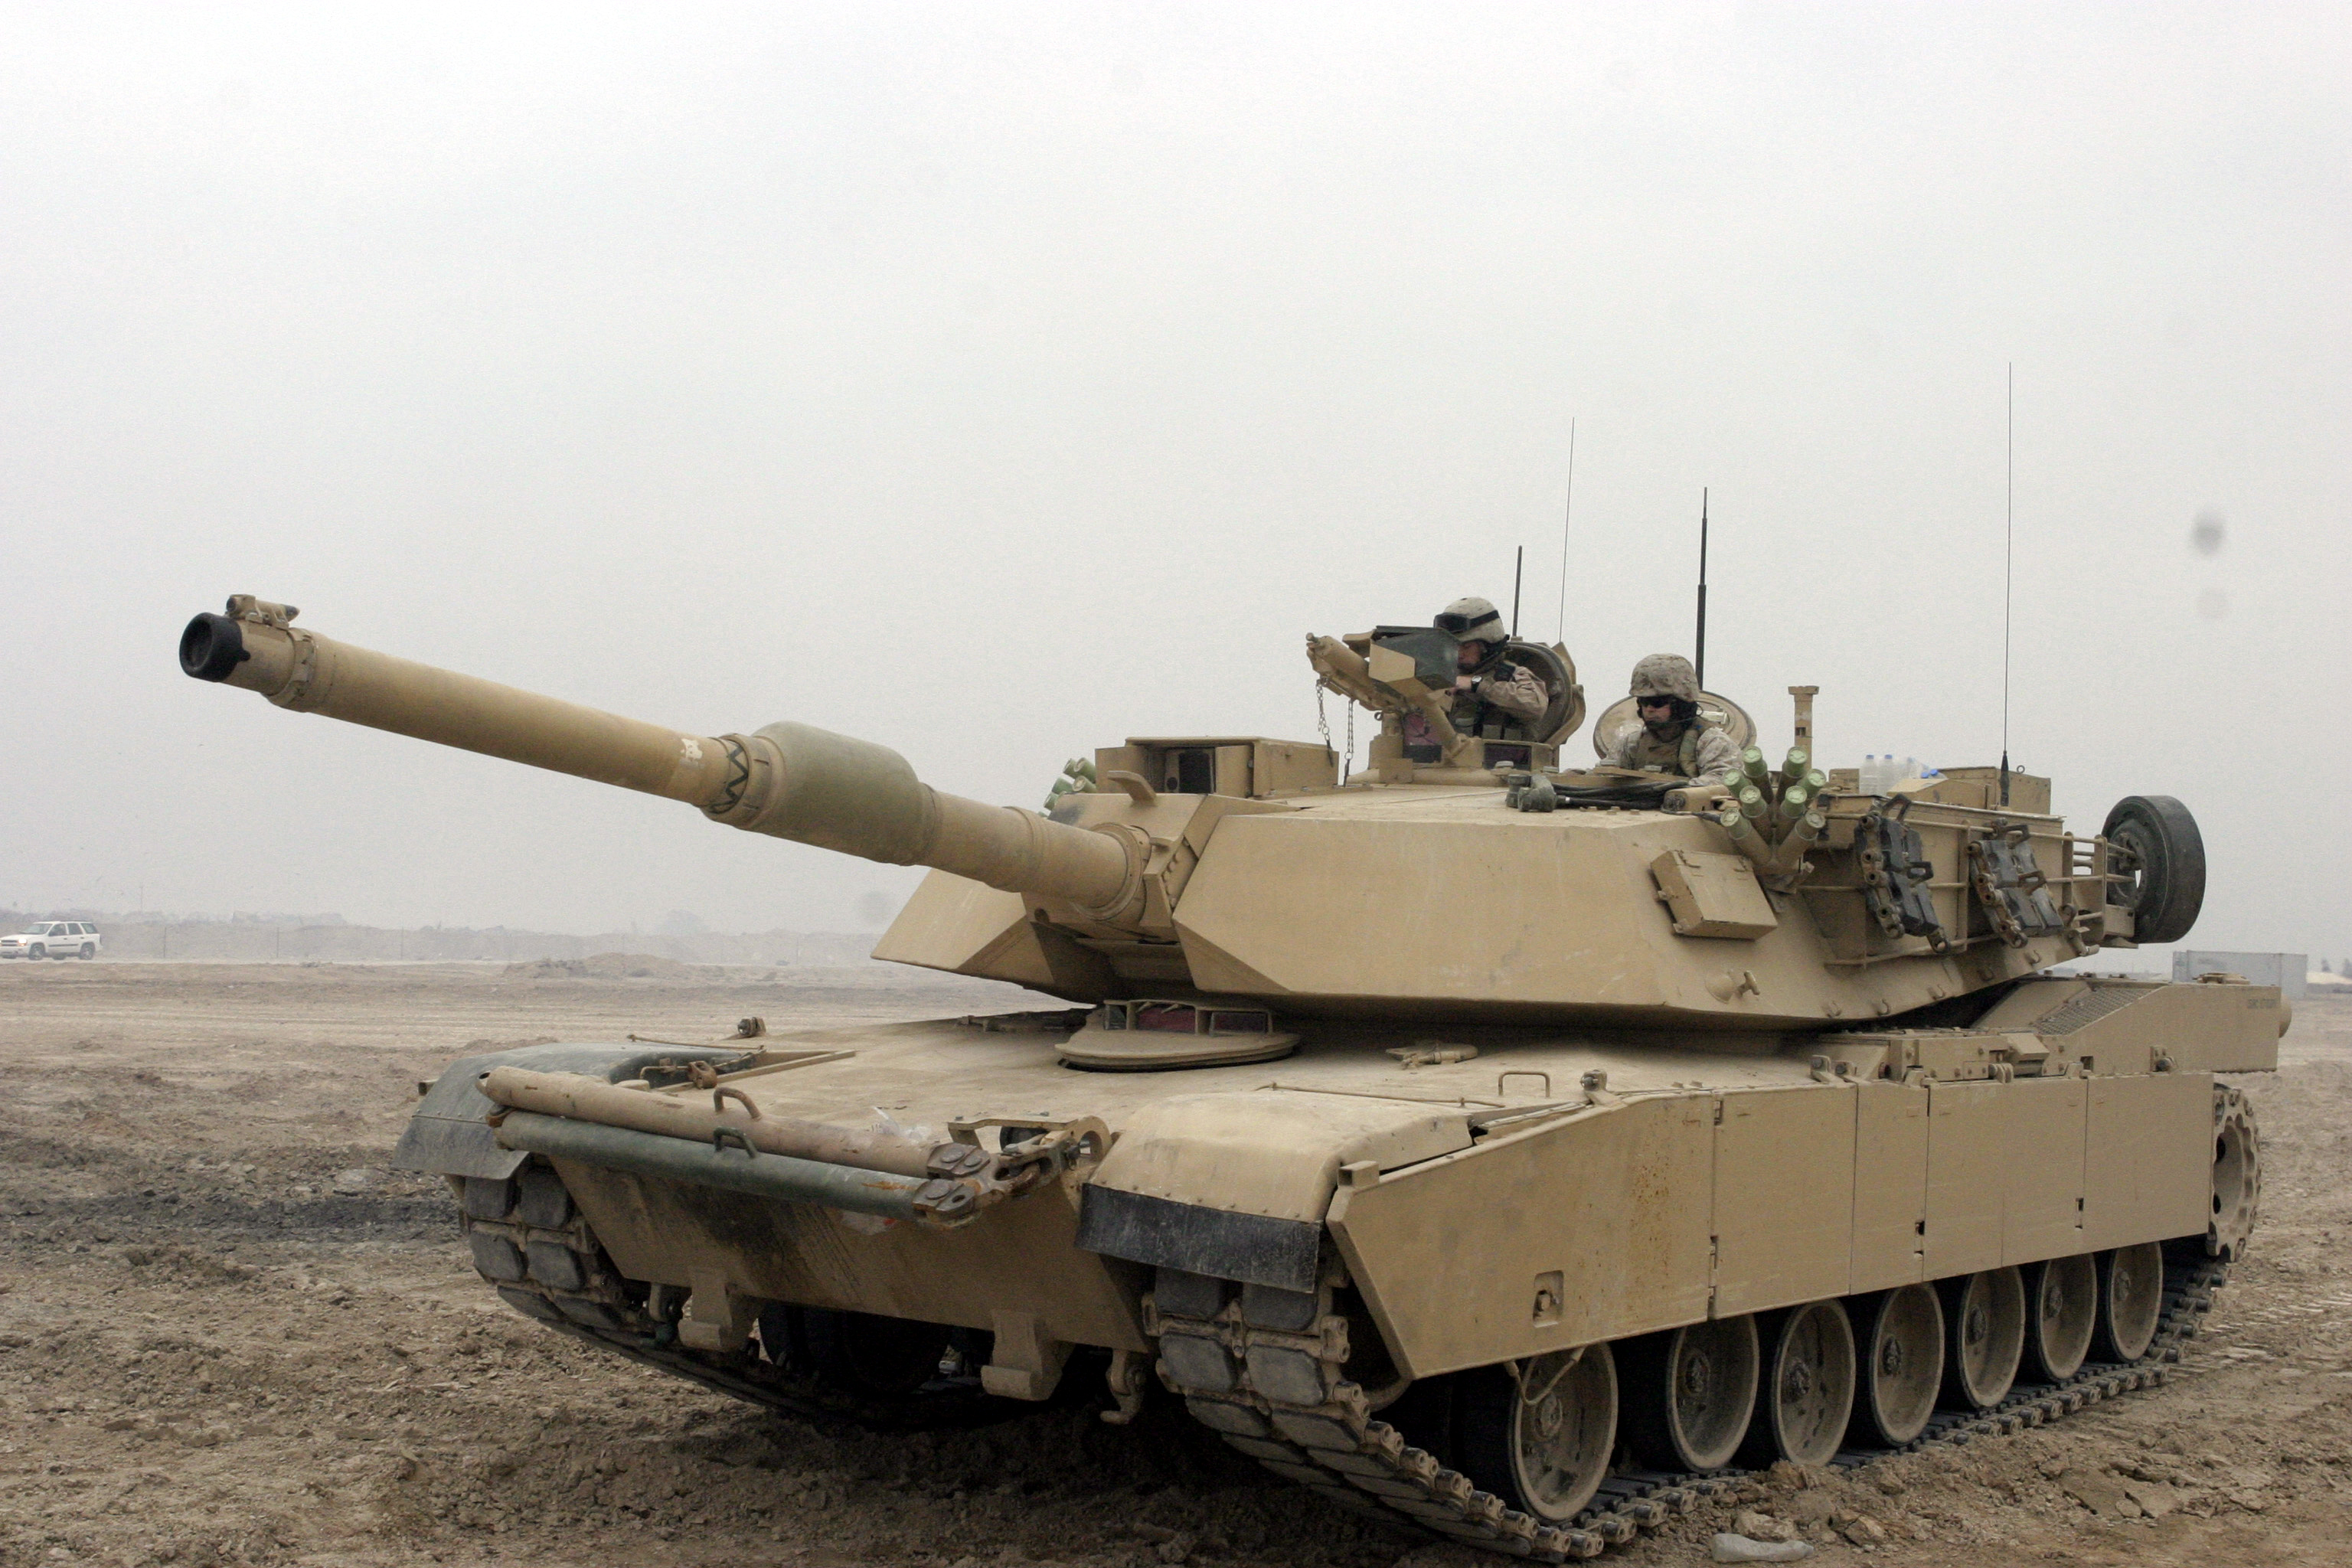 http://upload.wikimedia.org/wikipedia/commons/2/23/M1A1_Abrams_Tank_in_Camp_Fallujah.JPEG